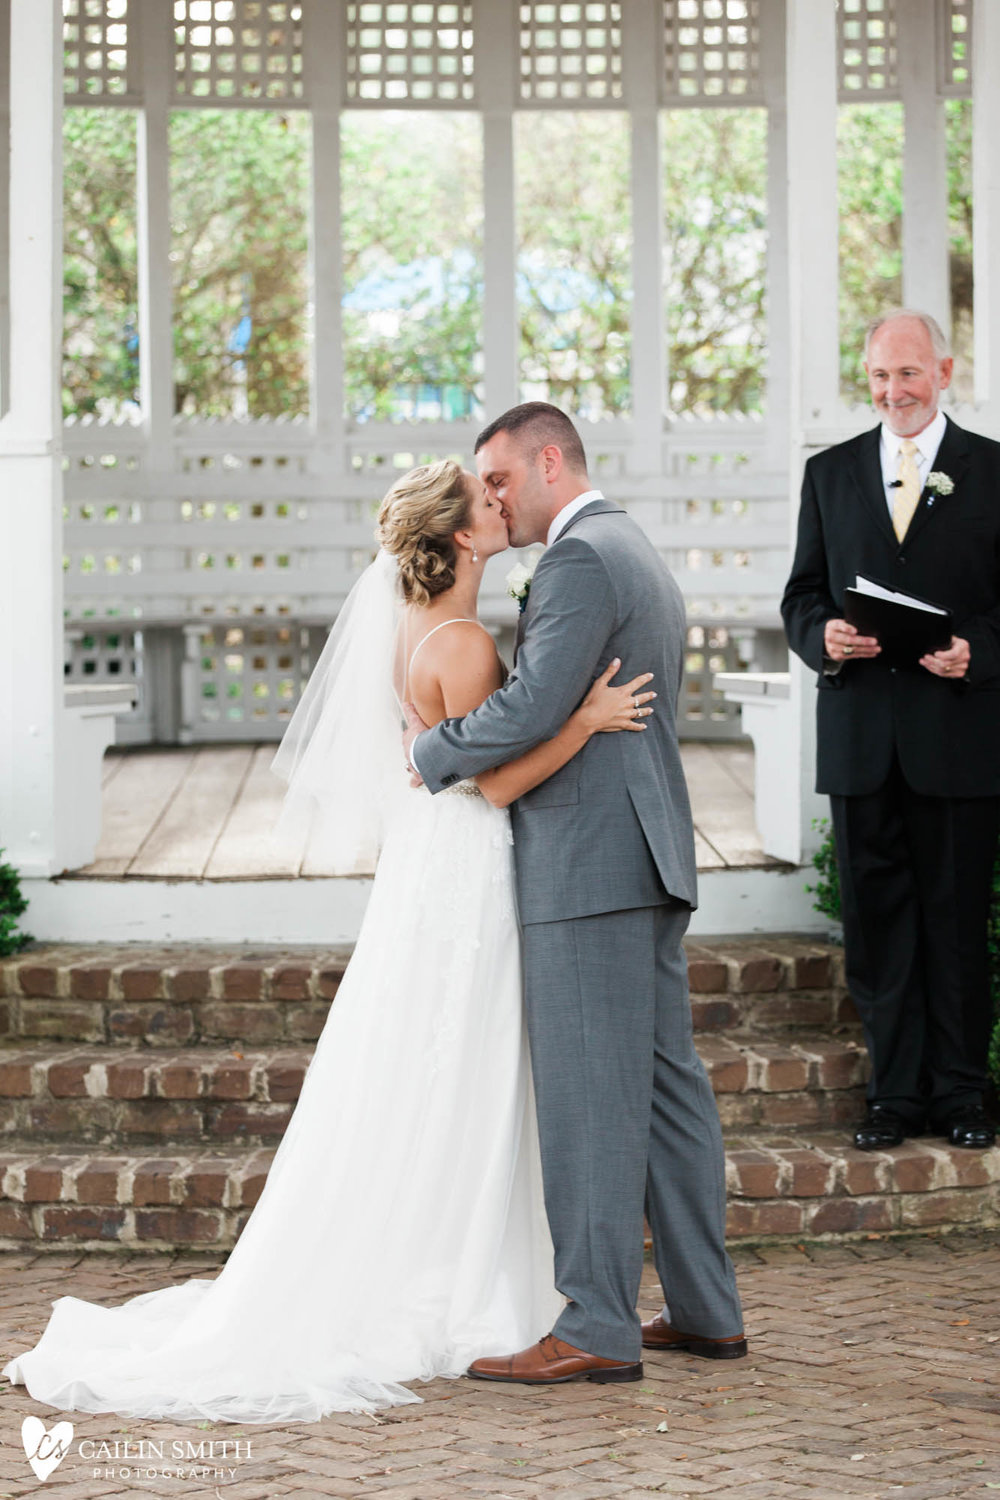 Sarah_Justin_St_Simons_Island_Lighthouse_Wedding_Photography_062.jpg